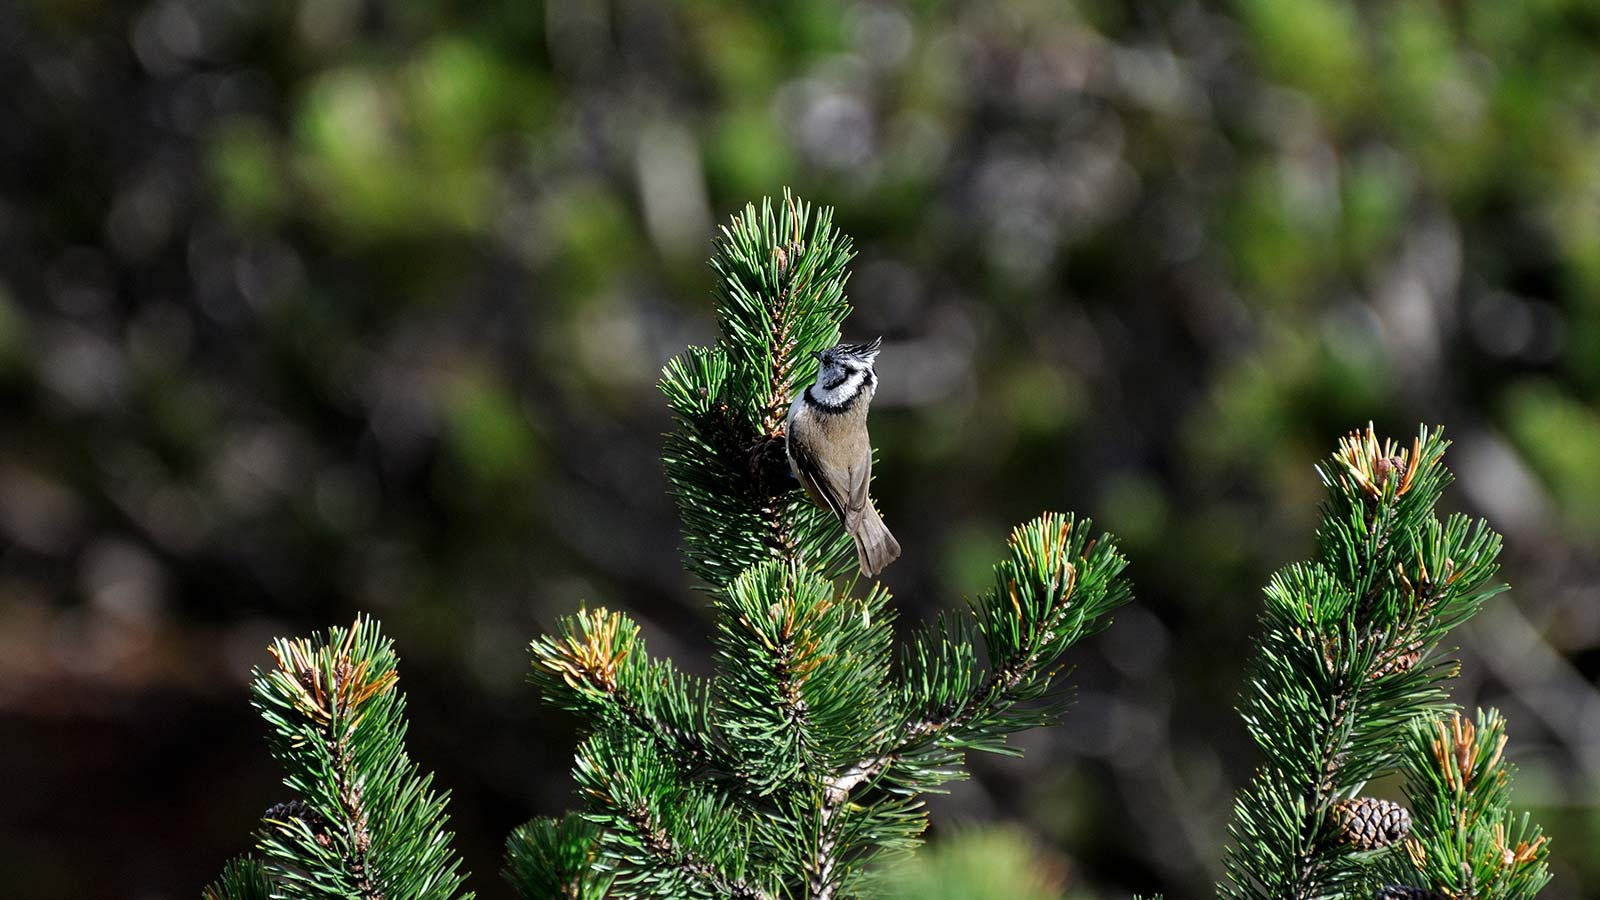 Alpine bird on a silver fir's branch